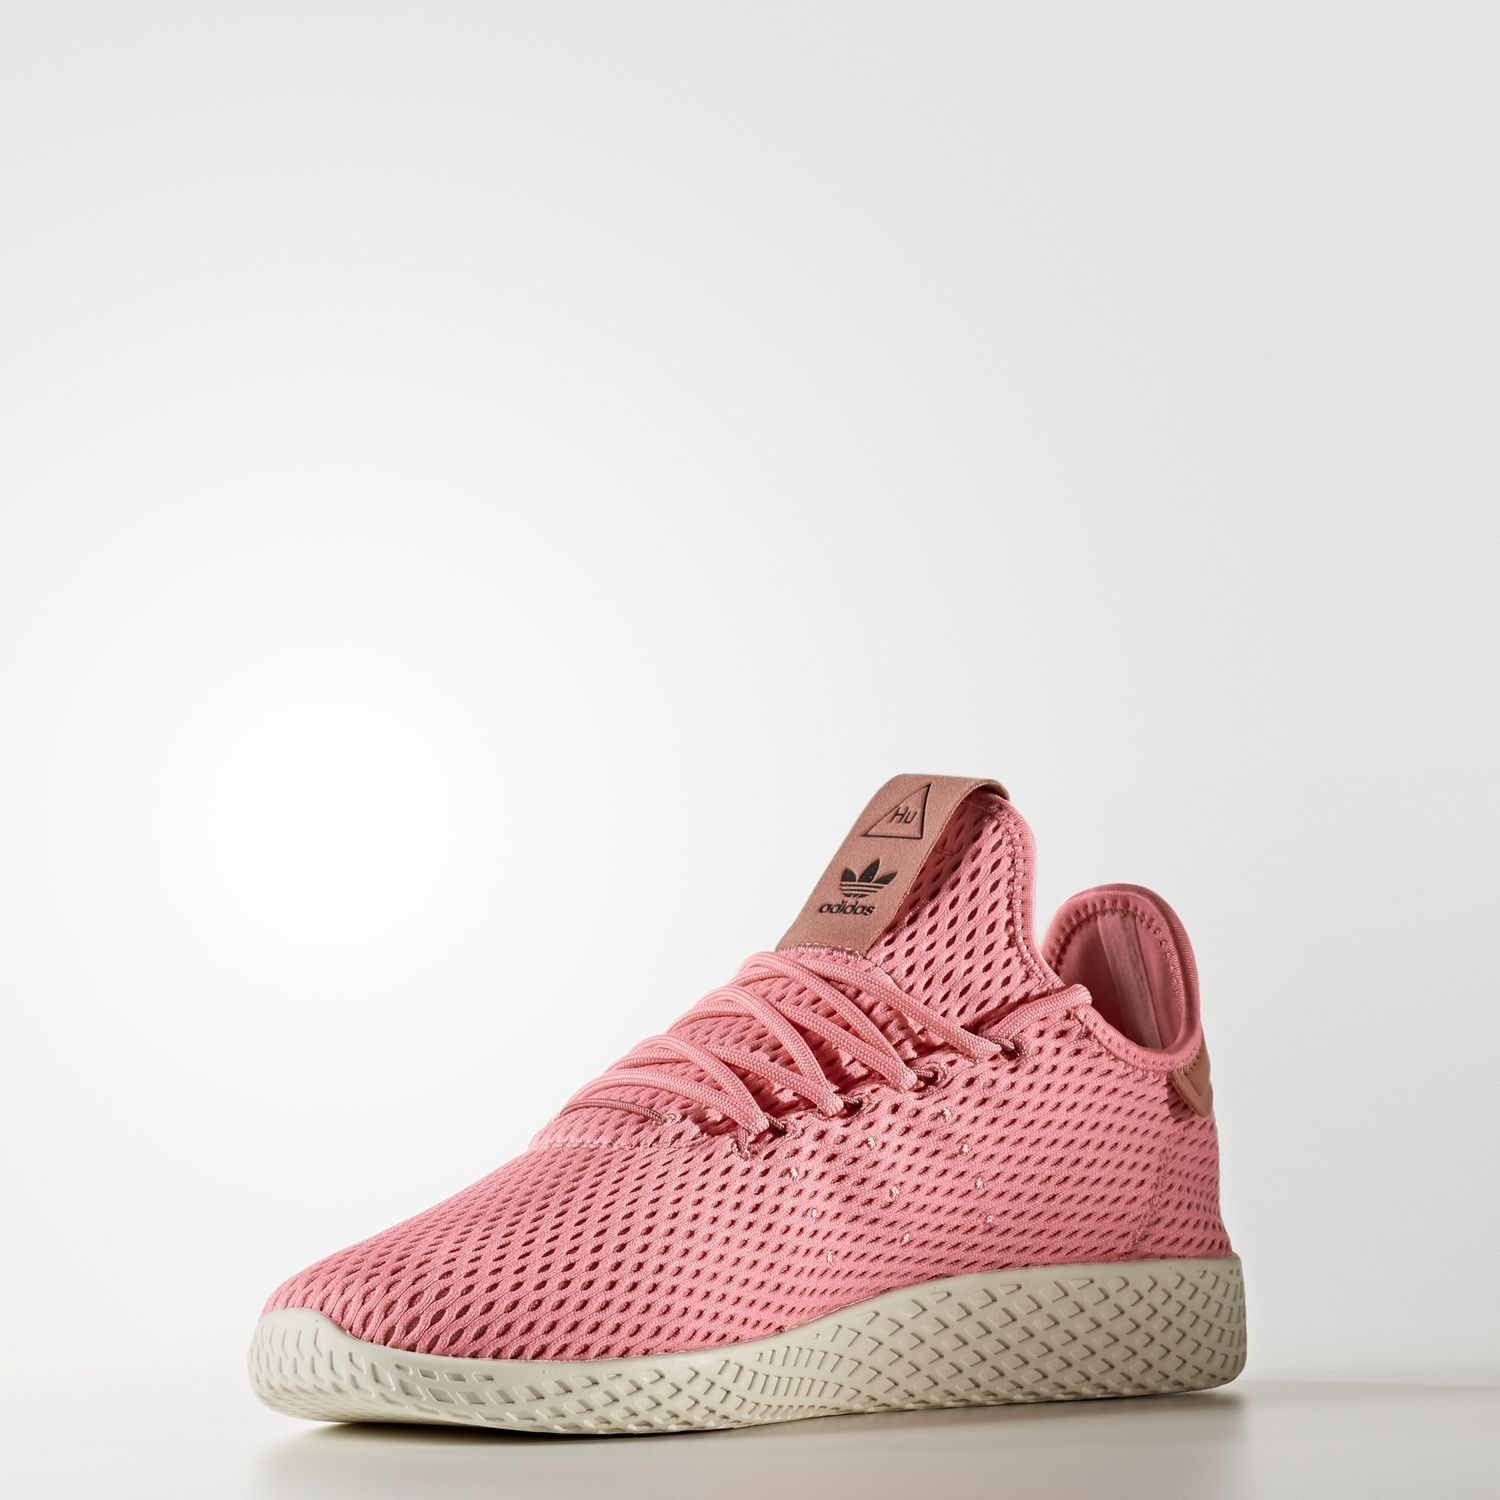 PHARRELL WILLIAMS TENNİS HU AYAKKABI | adidas